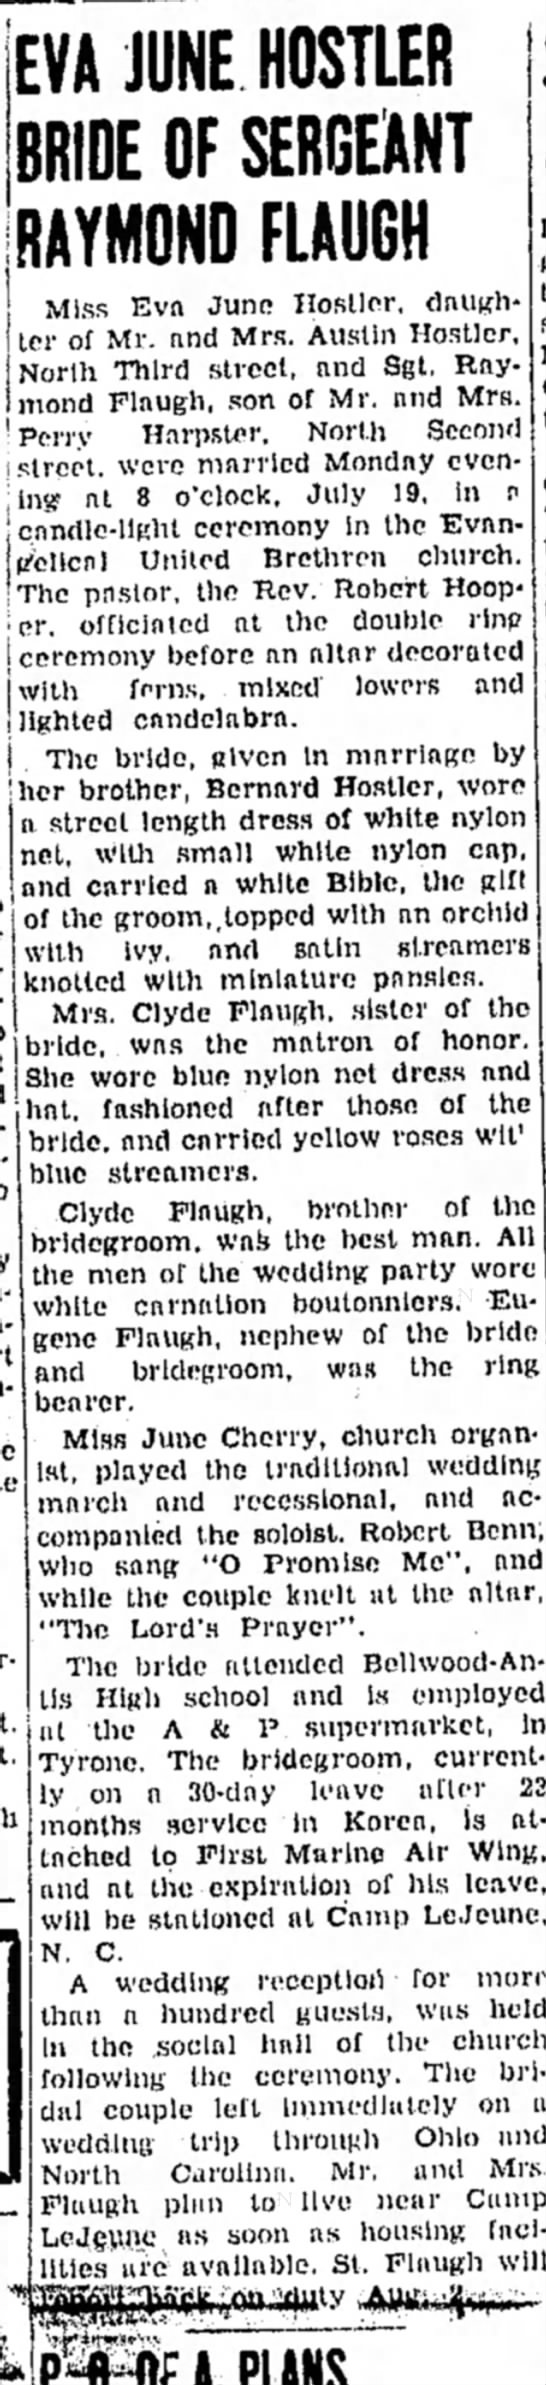 Raymond Flaugh - EVA JUNE HOSTLER BRIDE OF SERGEANT RAYMOND...